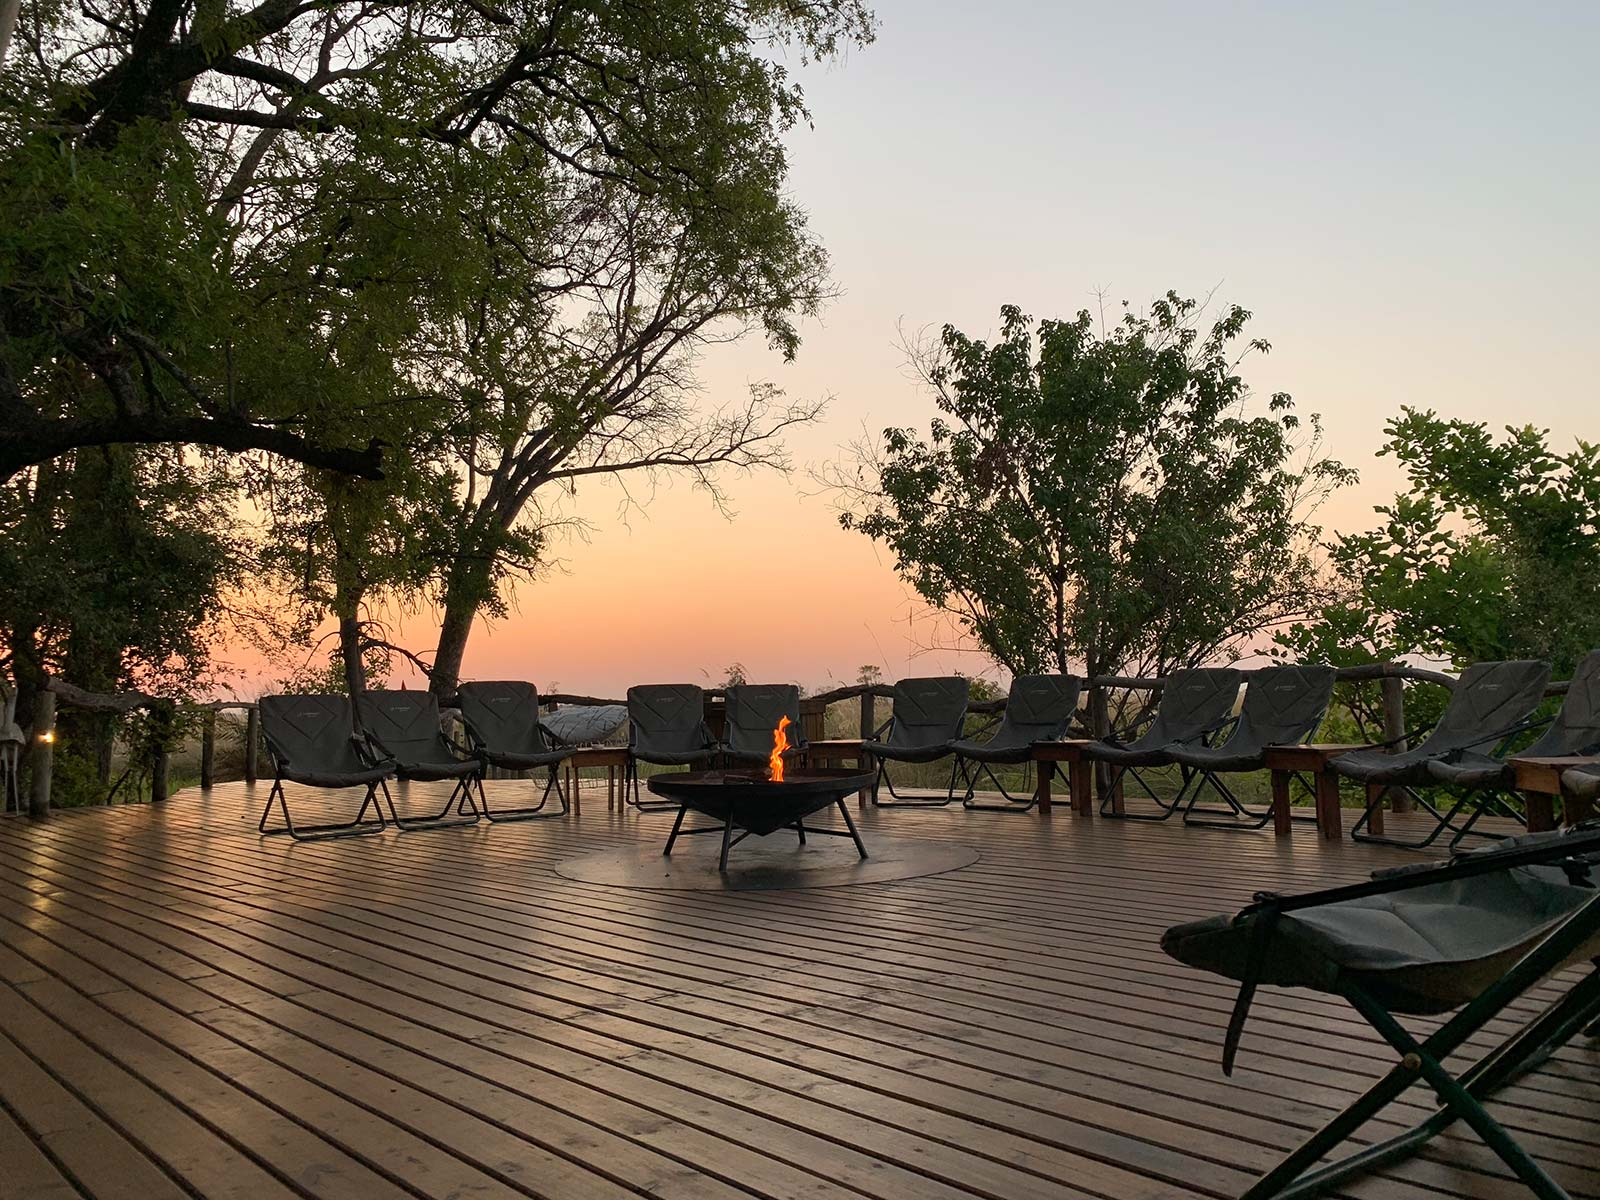 Chairs around a bonfire at game reserve in Botswana, Africa. Sh*ting next to an elephant